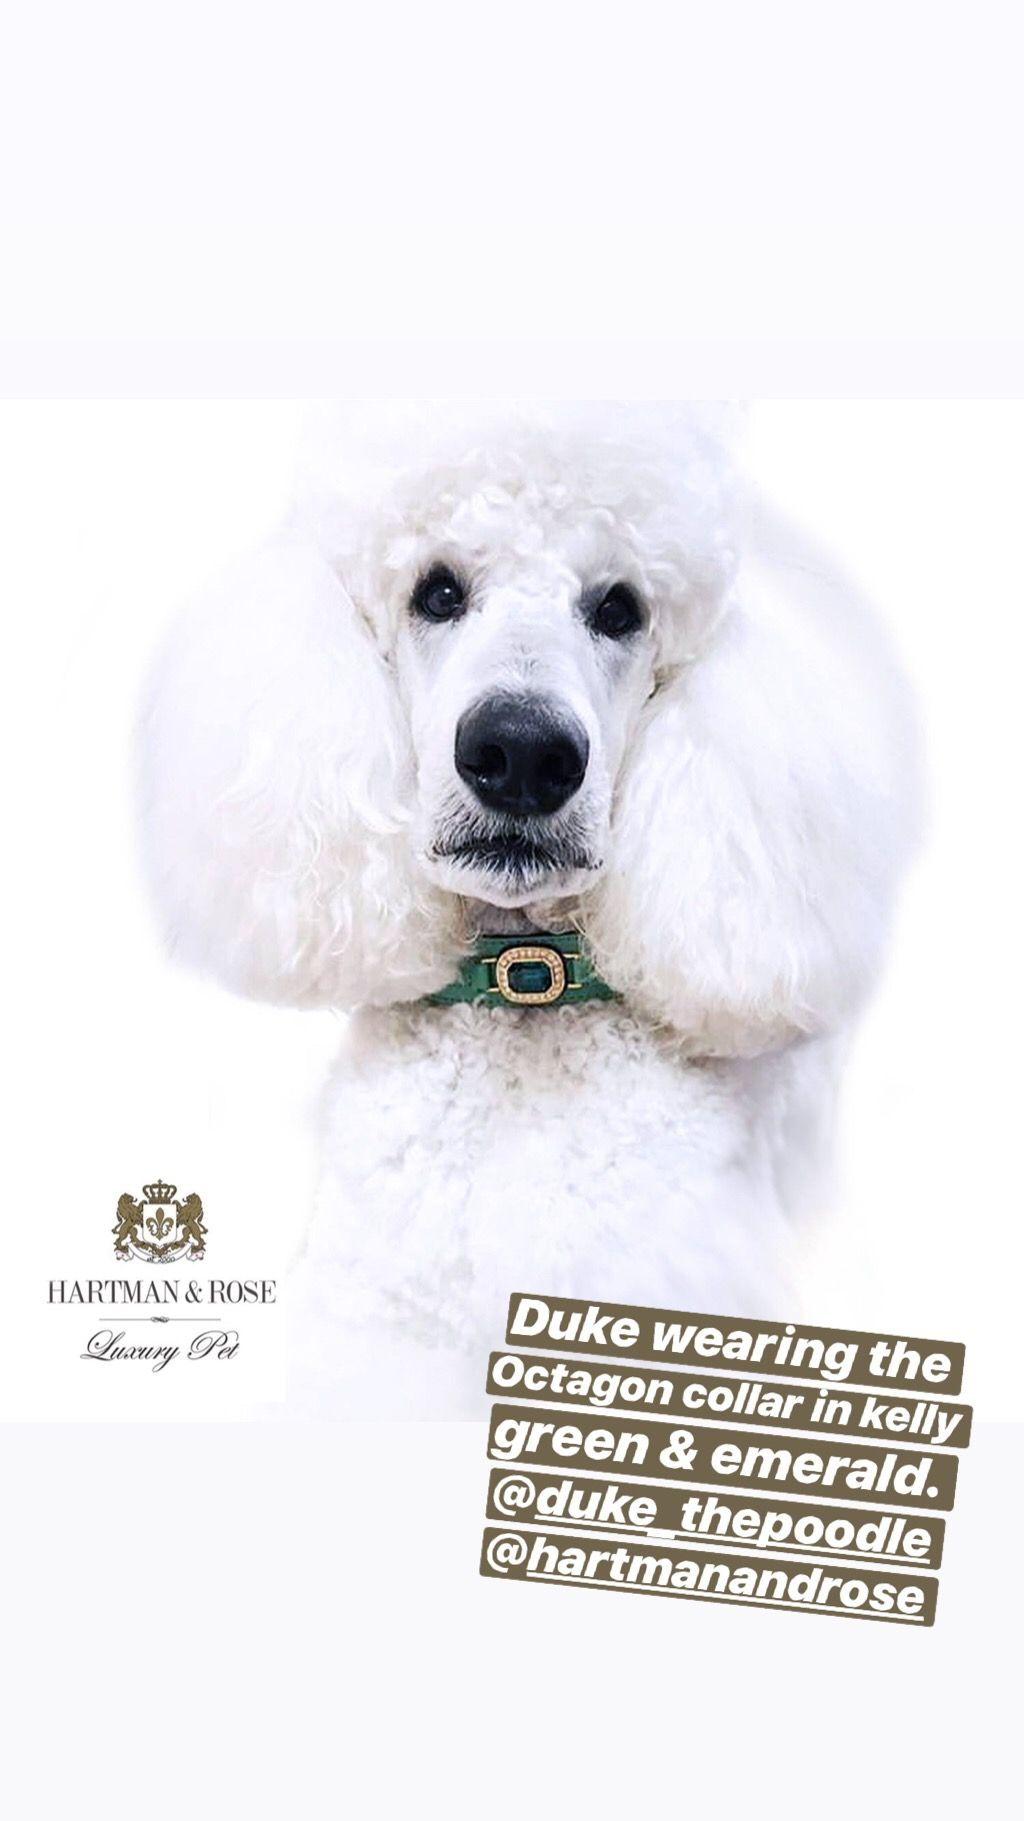 Save 40% use code: Parkavenue Hartman & Rose Luxury Pet Products www.hartmanandrose.com Duke wearing the Octagon collar in kelly green & emerald. The Swarovski center crystal is magnificent and so is Duke the Standard Poodle. @hartmanandrose #hartmanandrose @duke_thepoodle Take the Lead & Walk in Style ❤️